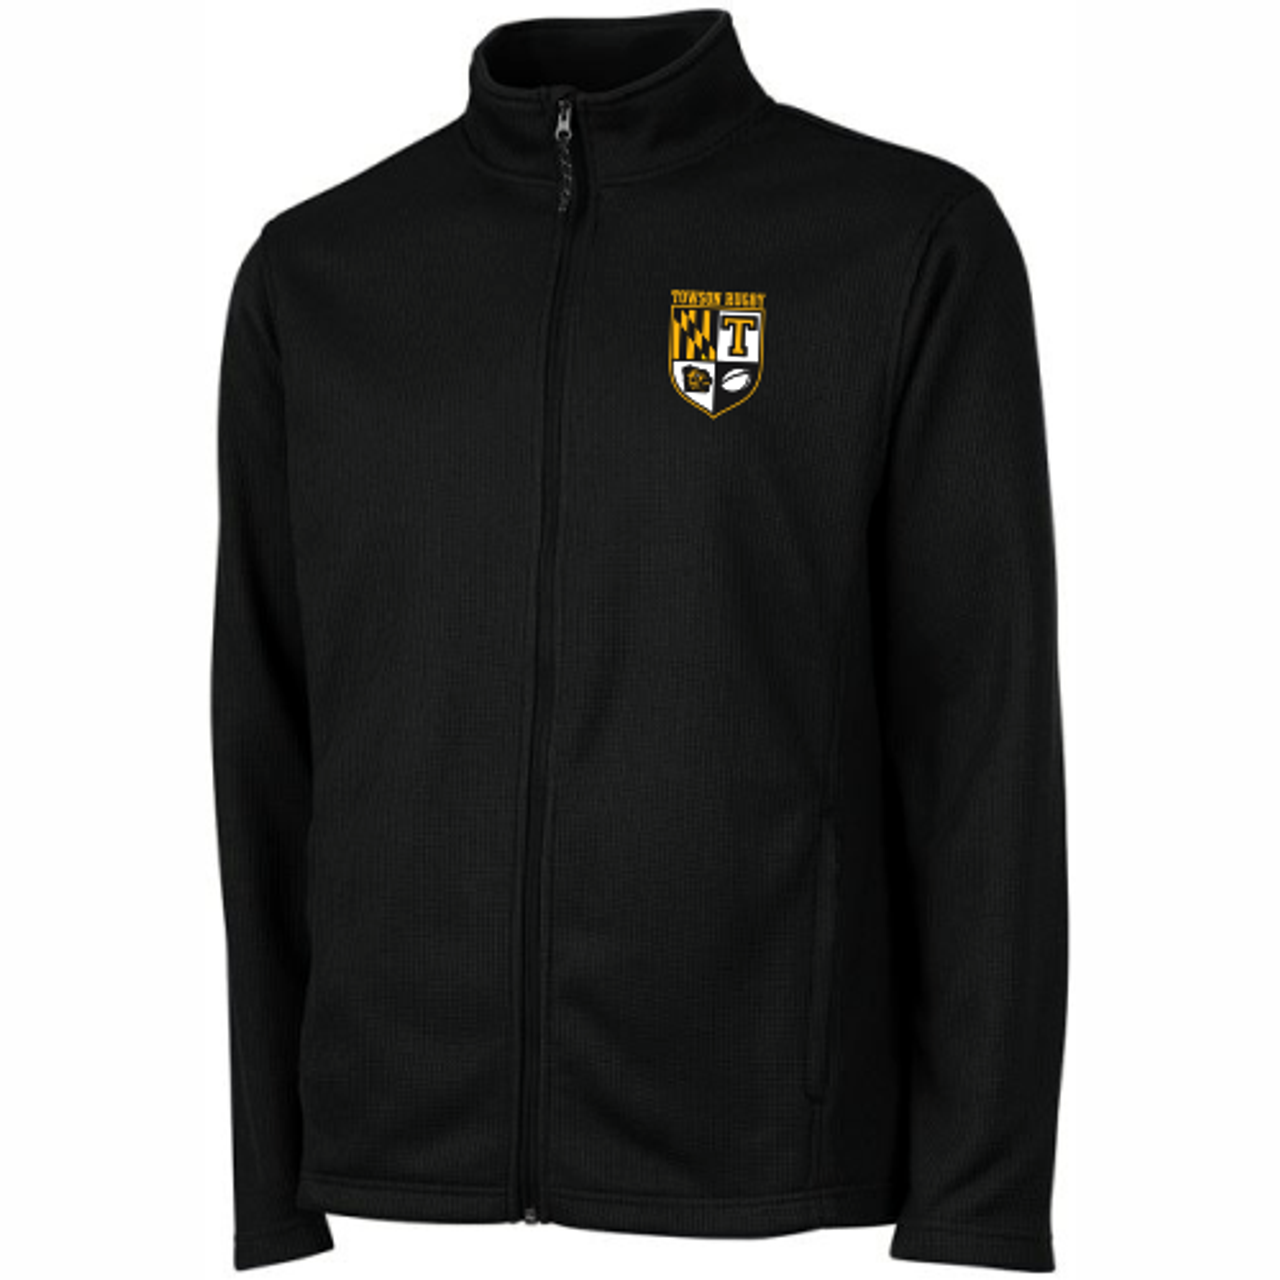 Towson Rugby Rib Knit Jacket